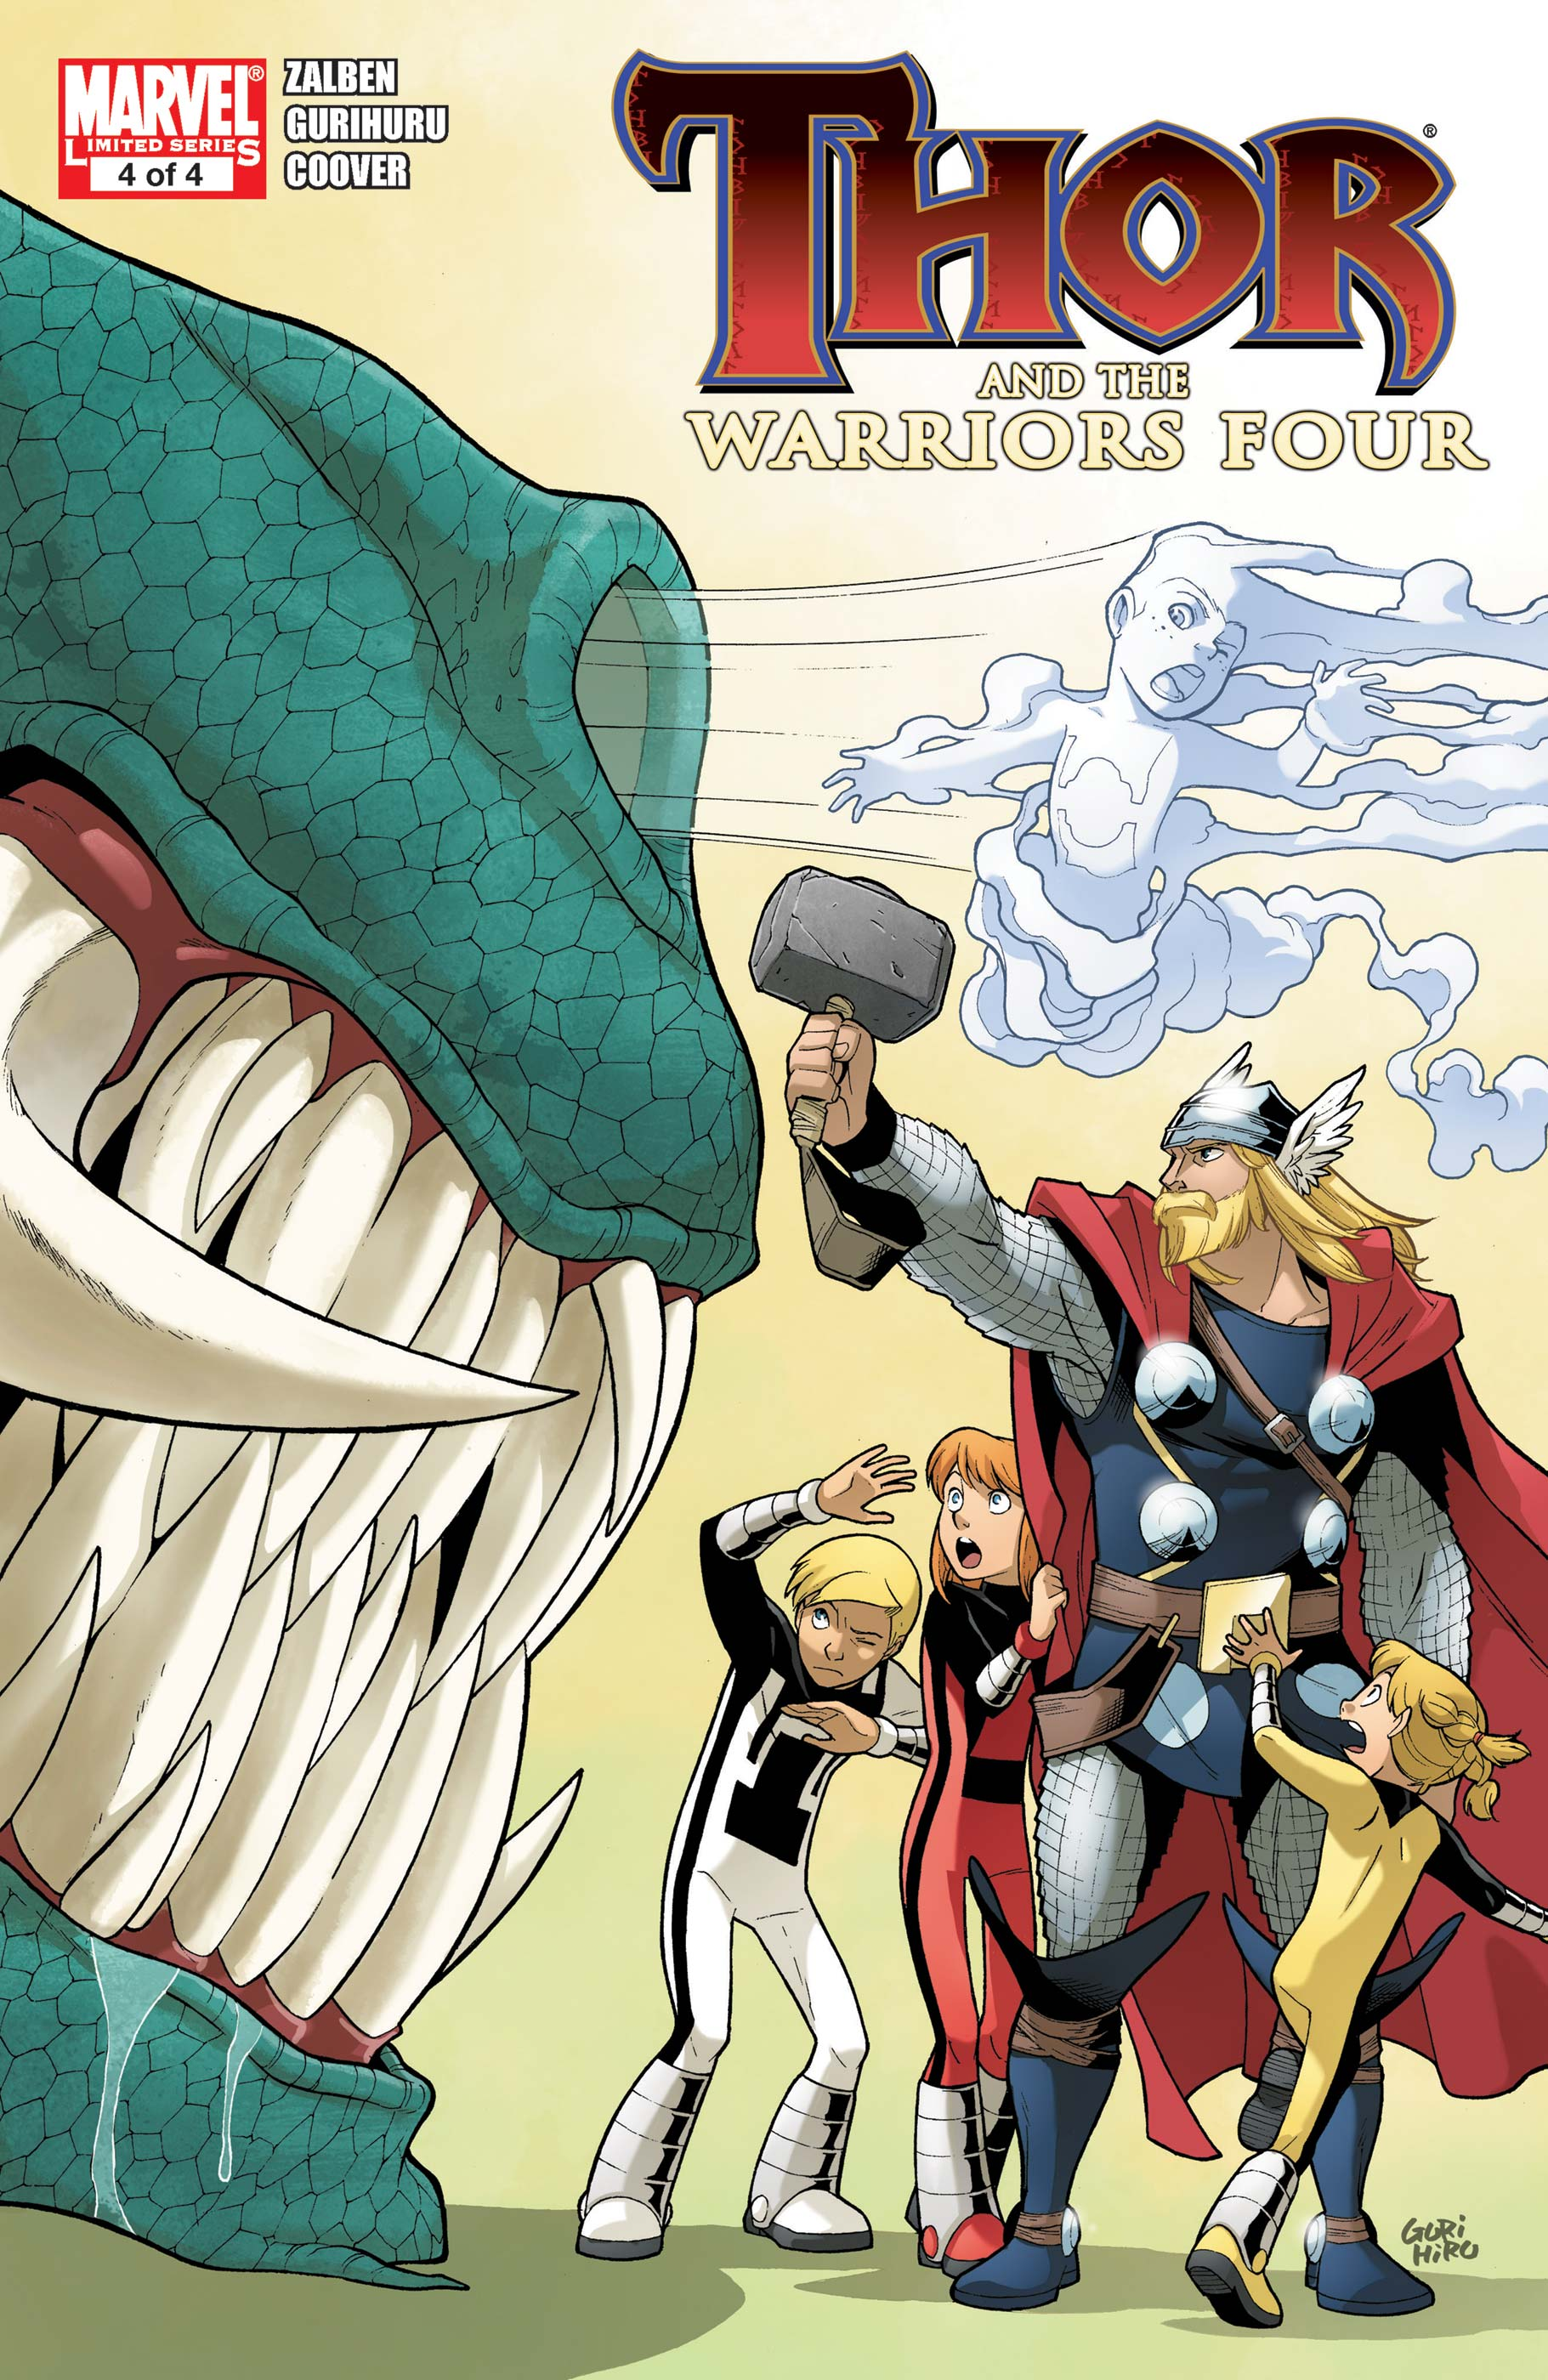 Thor and the Warriors Four (2010) #4